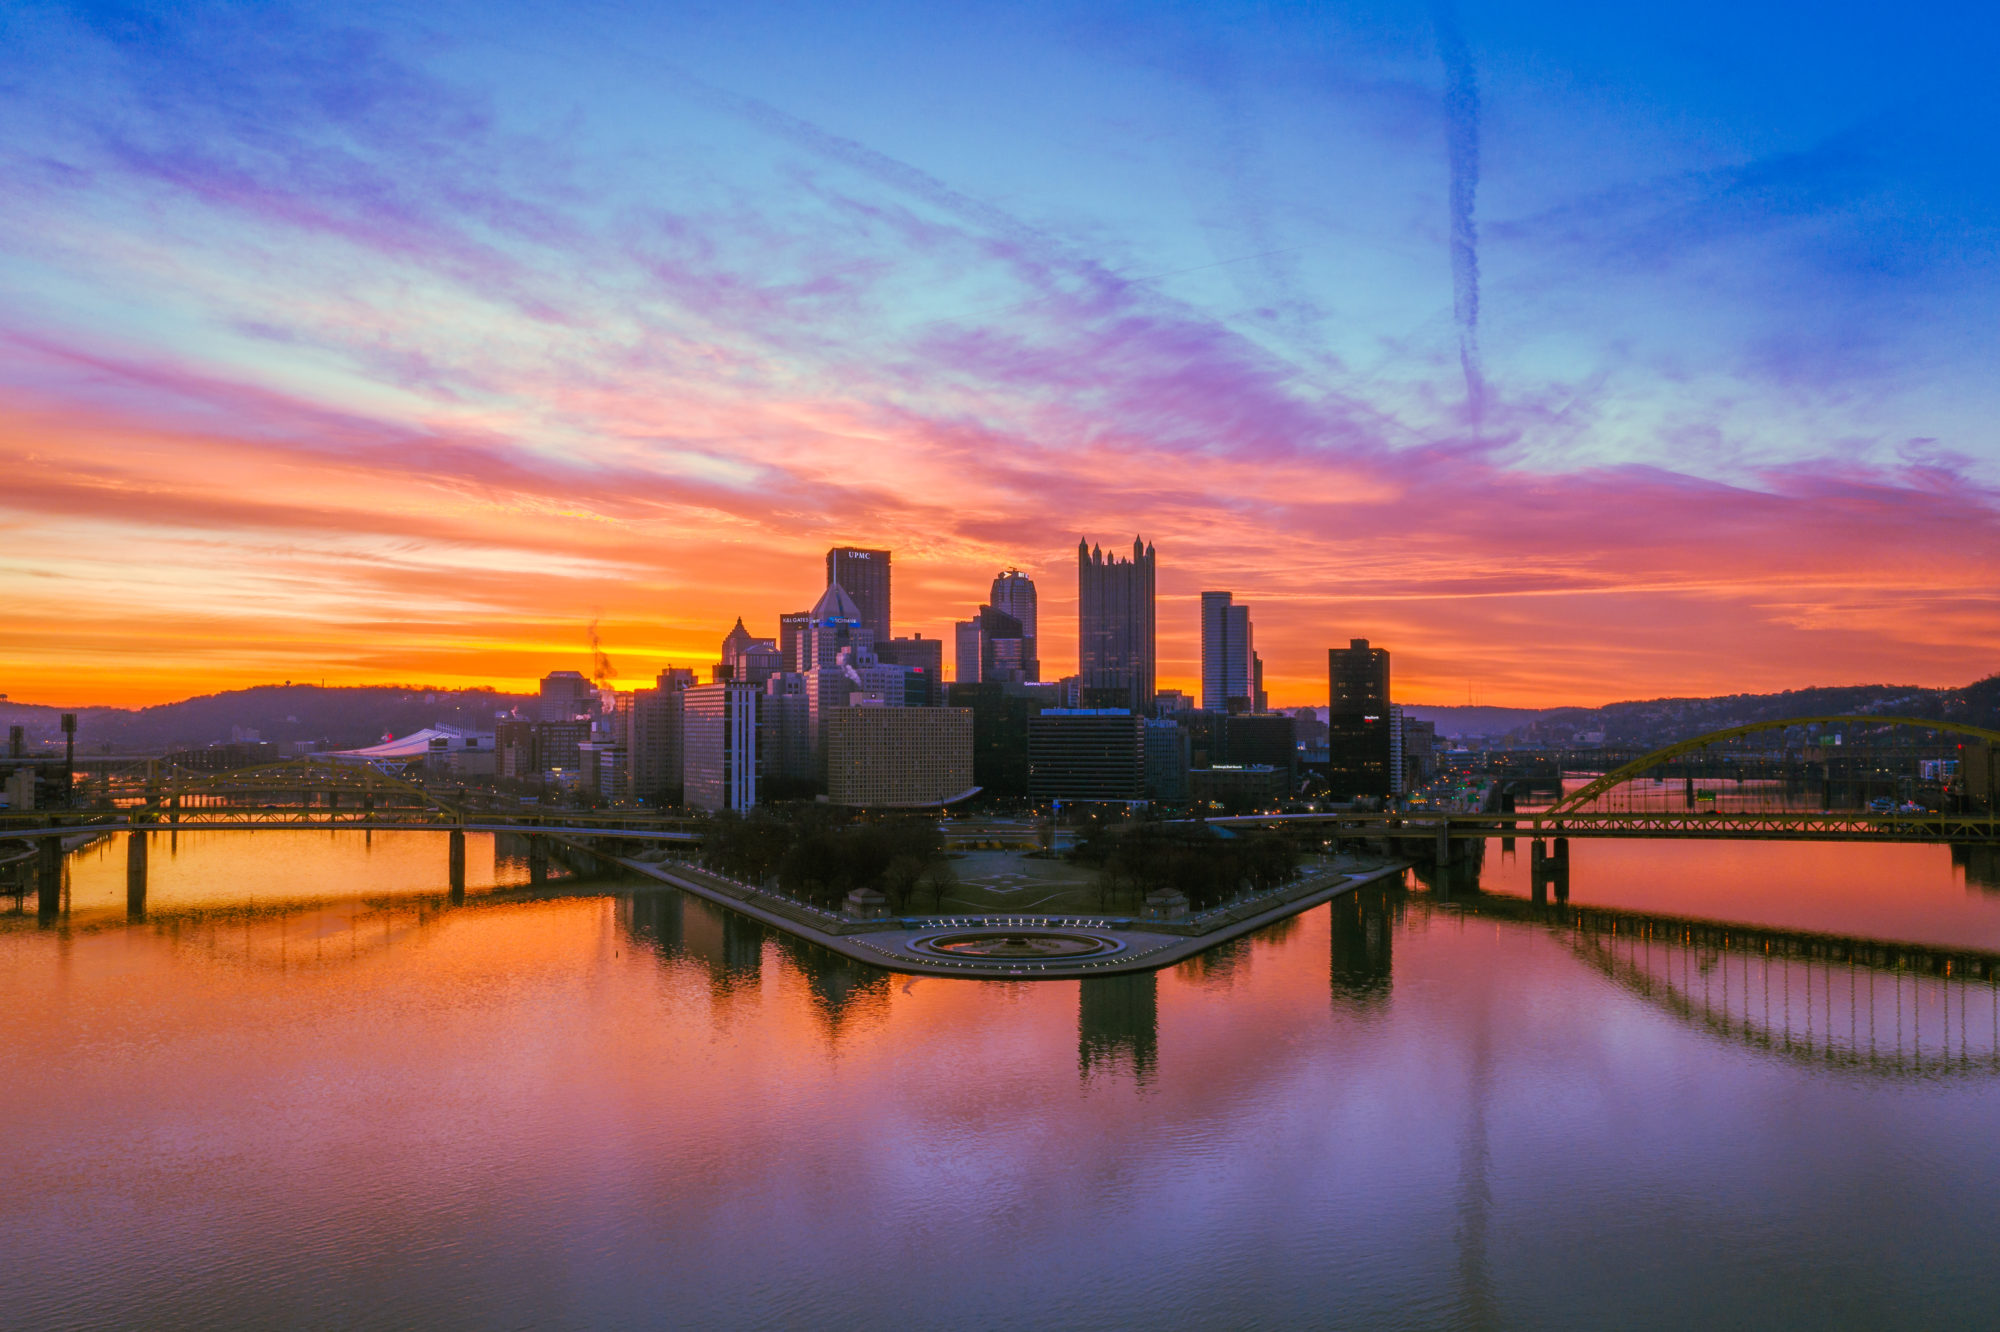 Scenic sunset shot of downtown Pittsburgh with The Point in the foreground